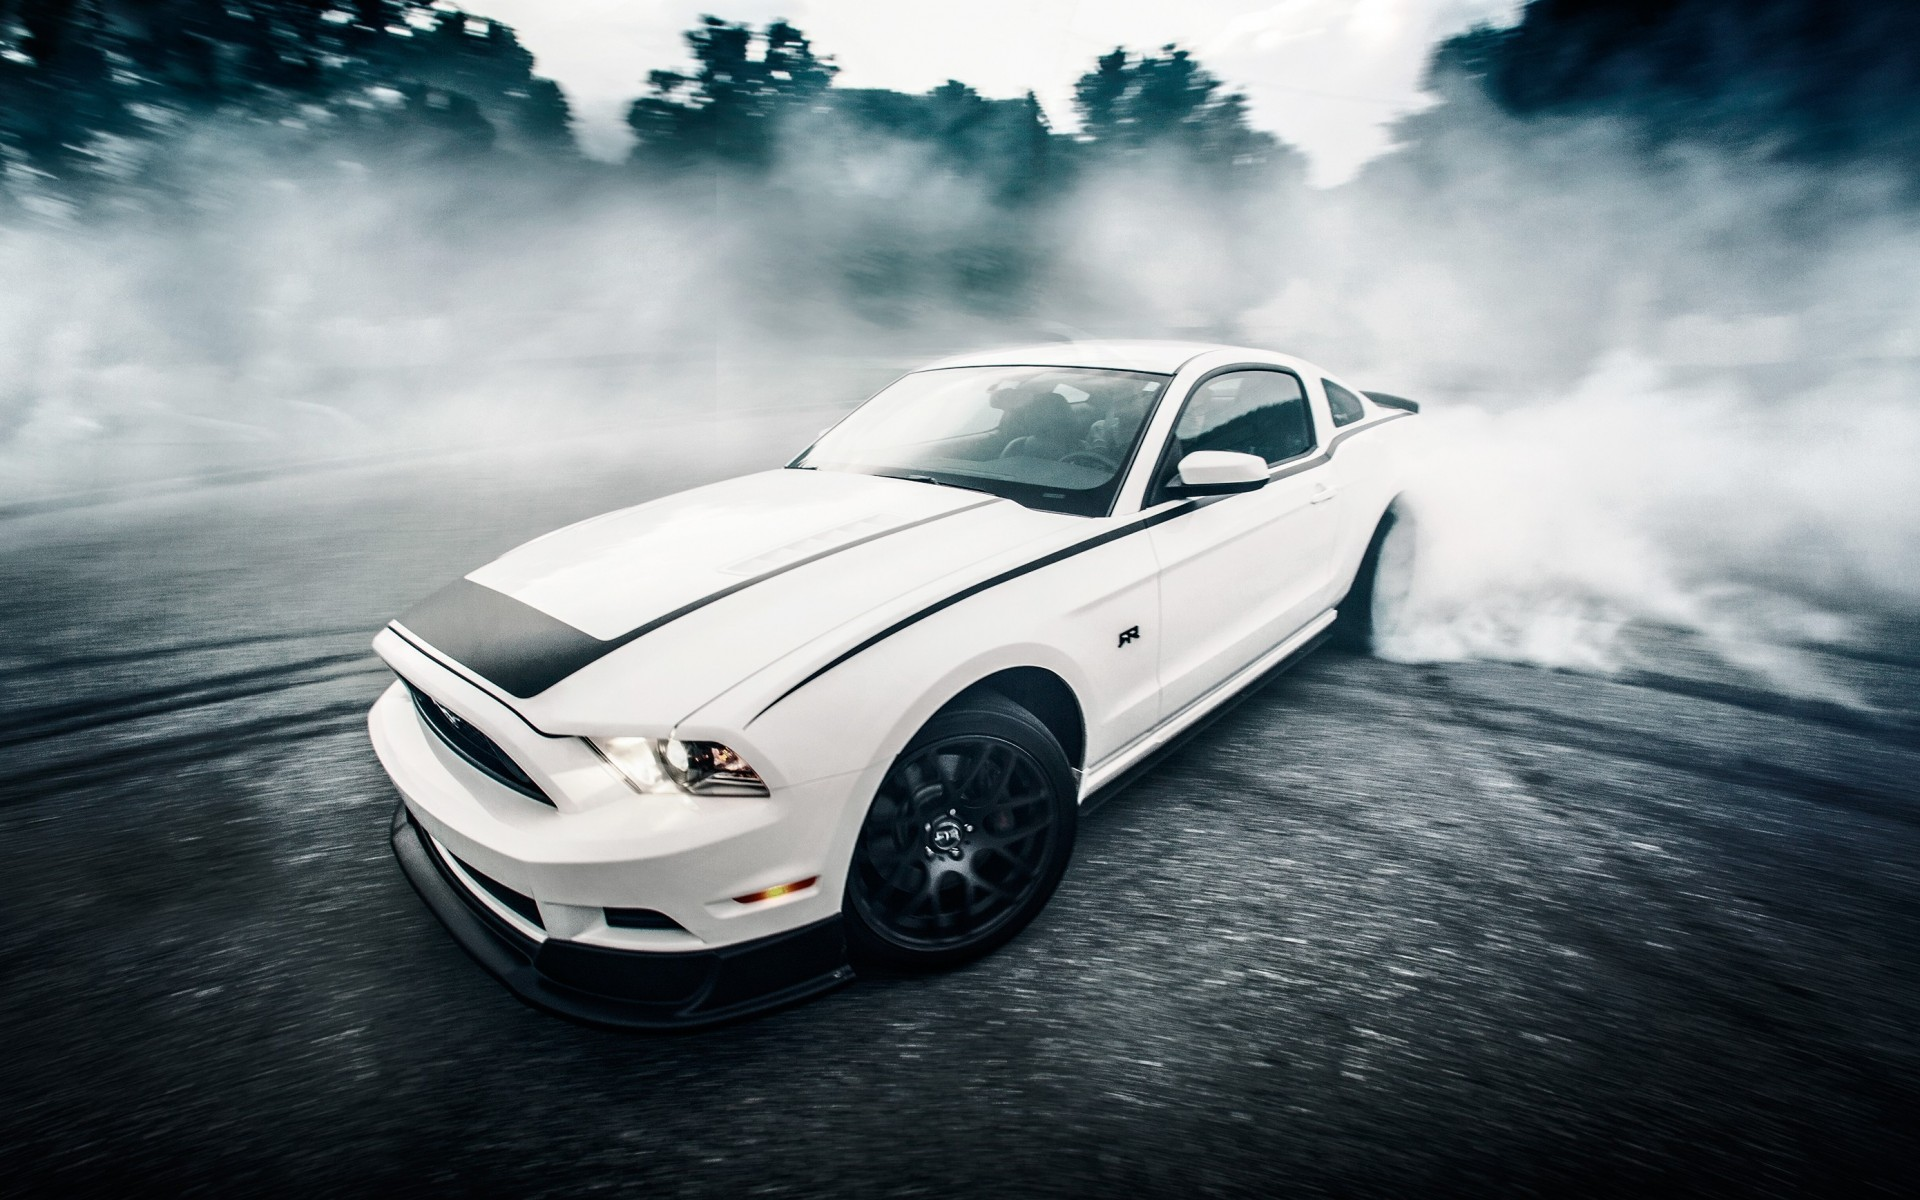 Muscle Car Ford Mustang Drifting Wallpaper 1920x1200 111485